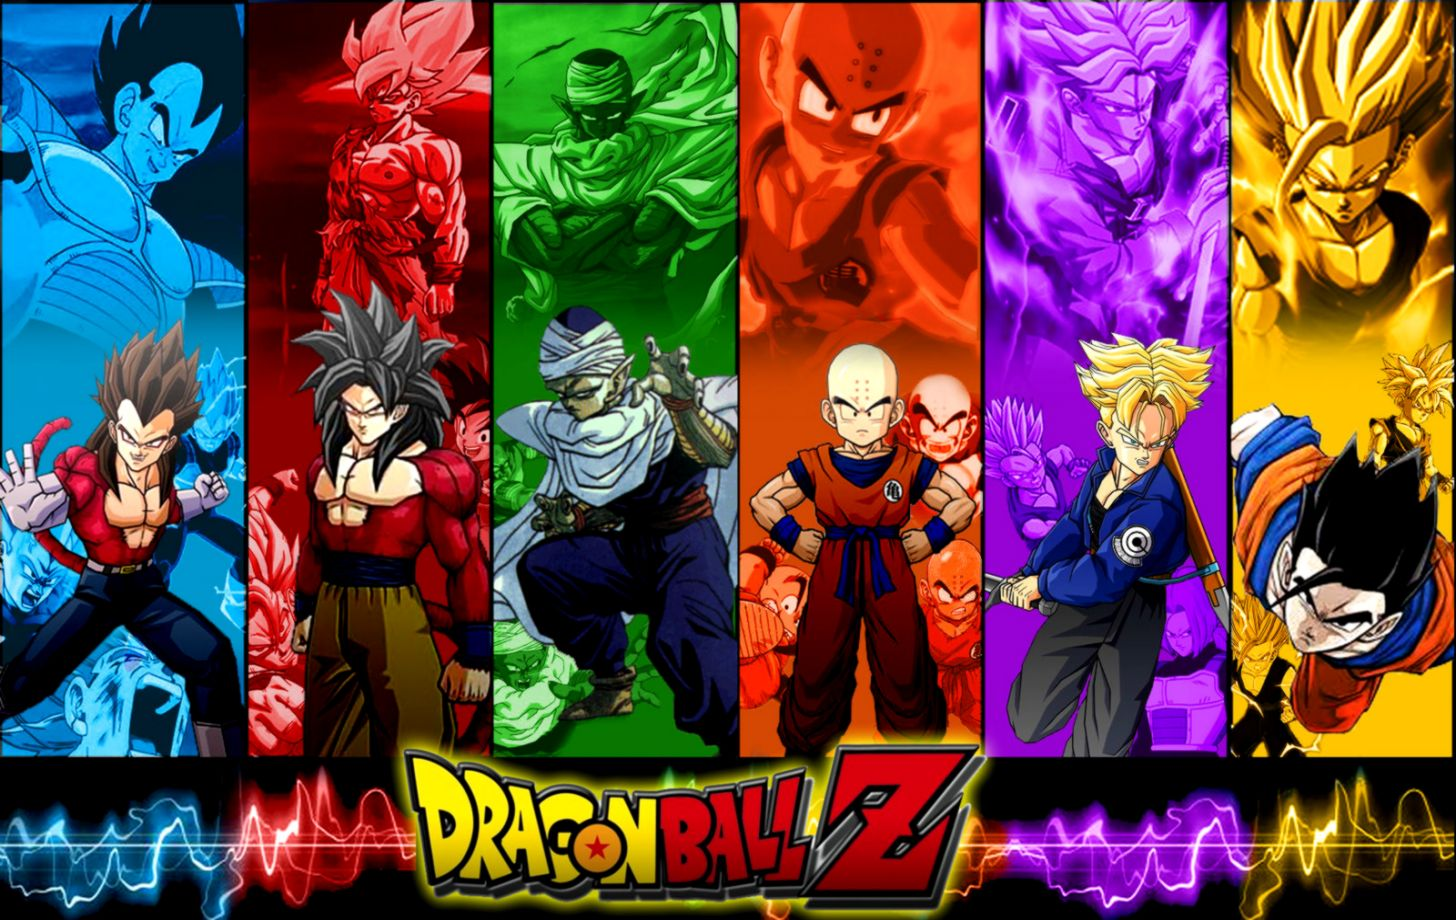 Dragon Ball Z Wallpapers Hd Goku Free Download Dragon Ball Z Background Pc 2848125 Hd Wallpaper Backgrounds Download